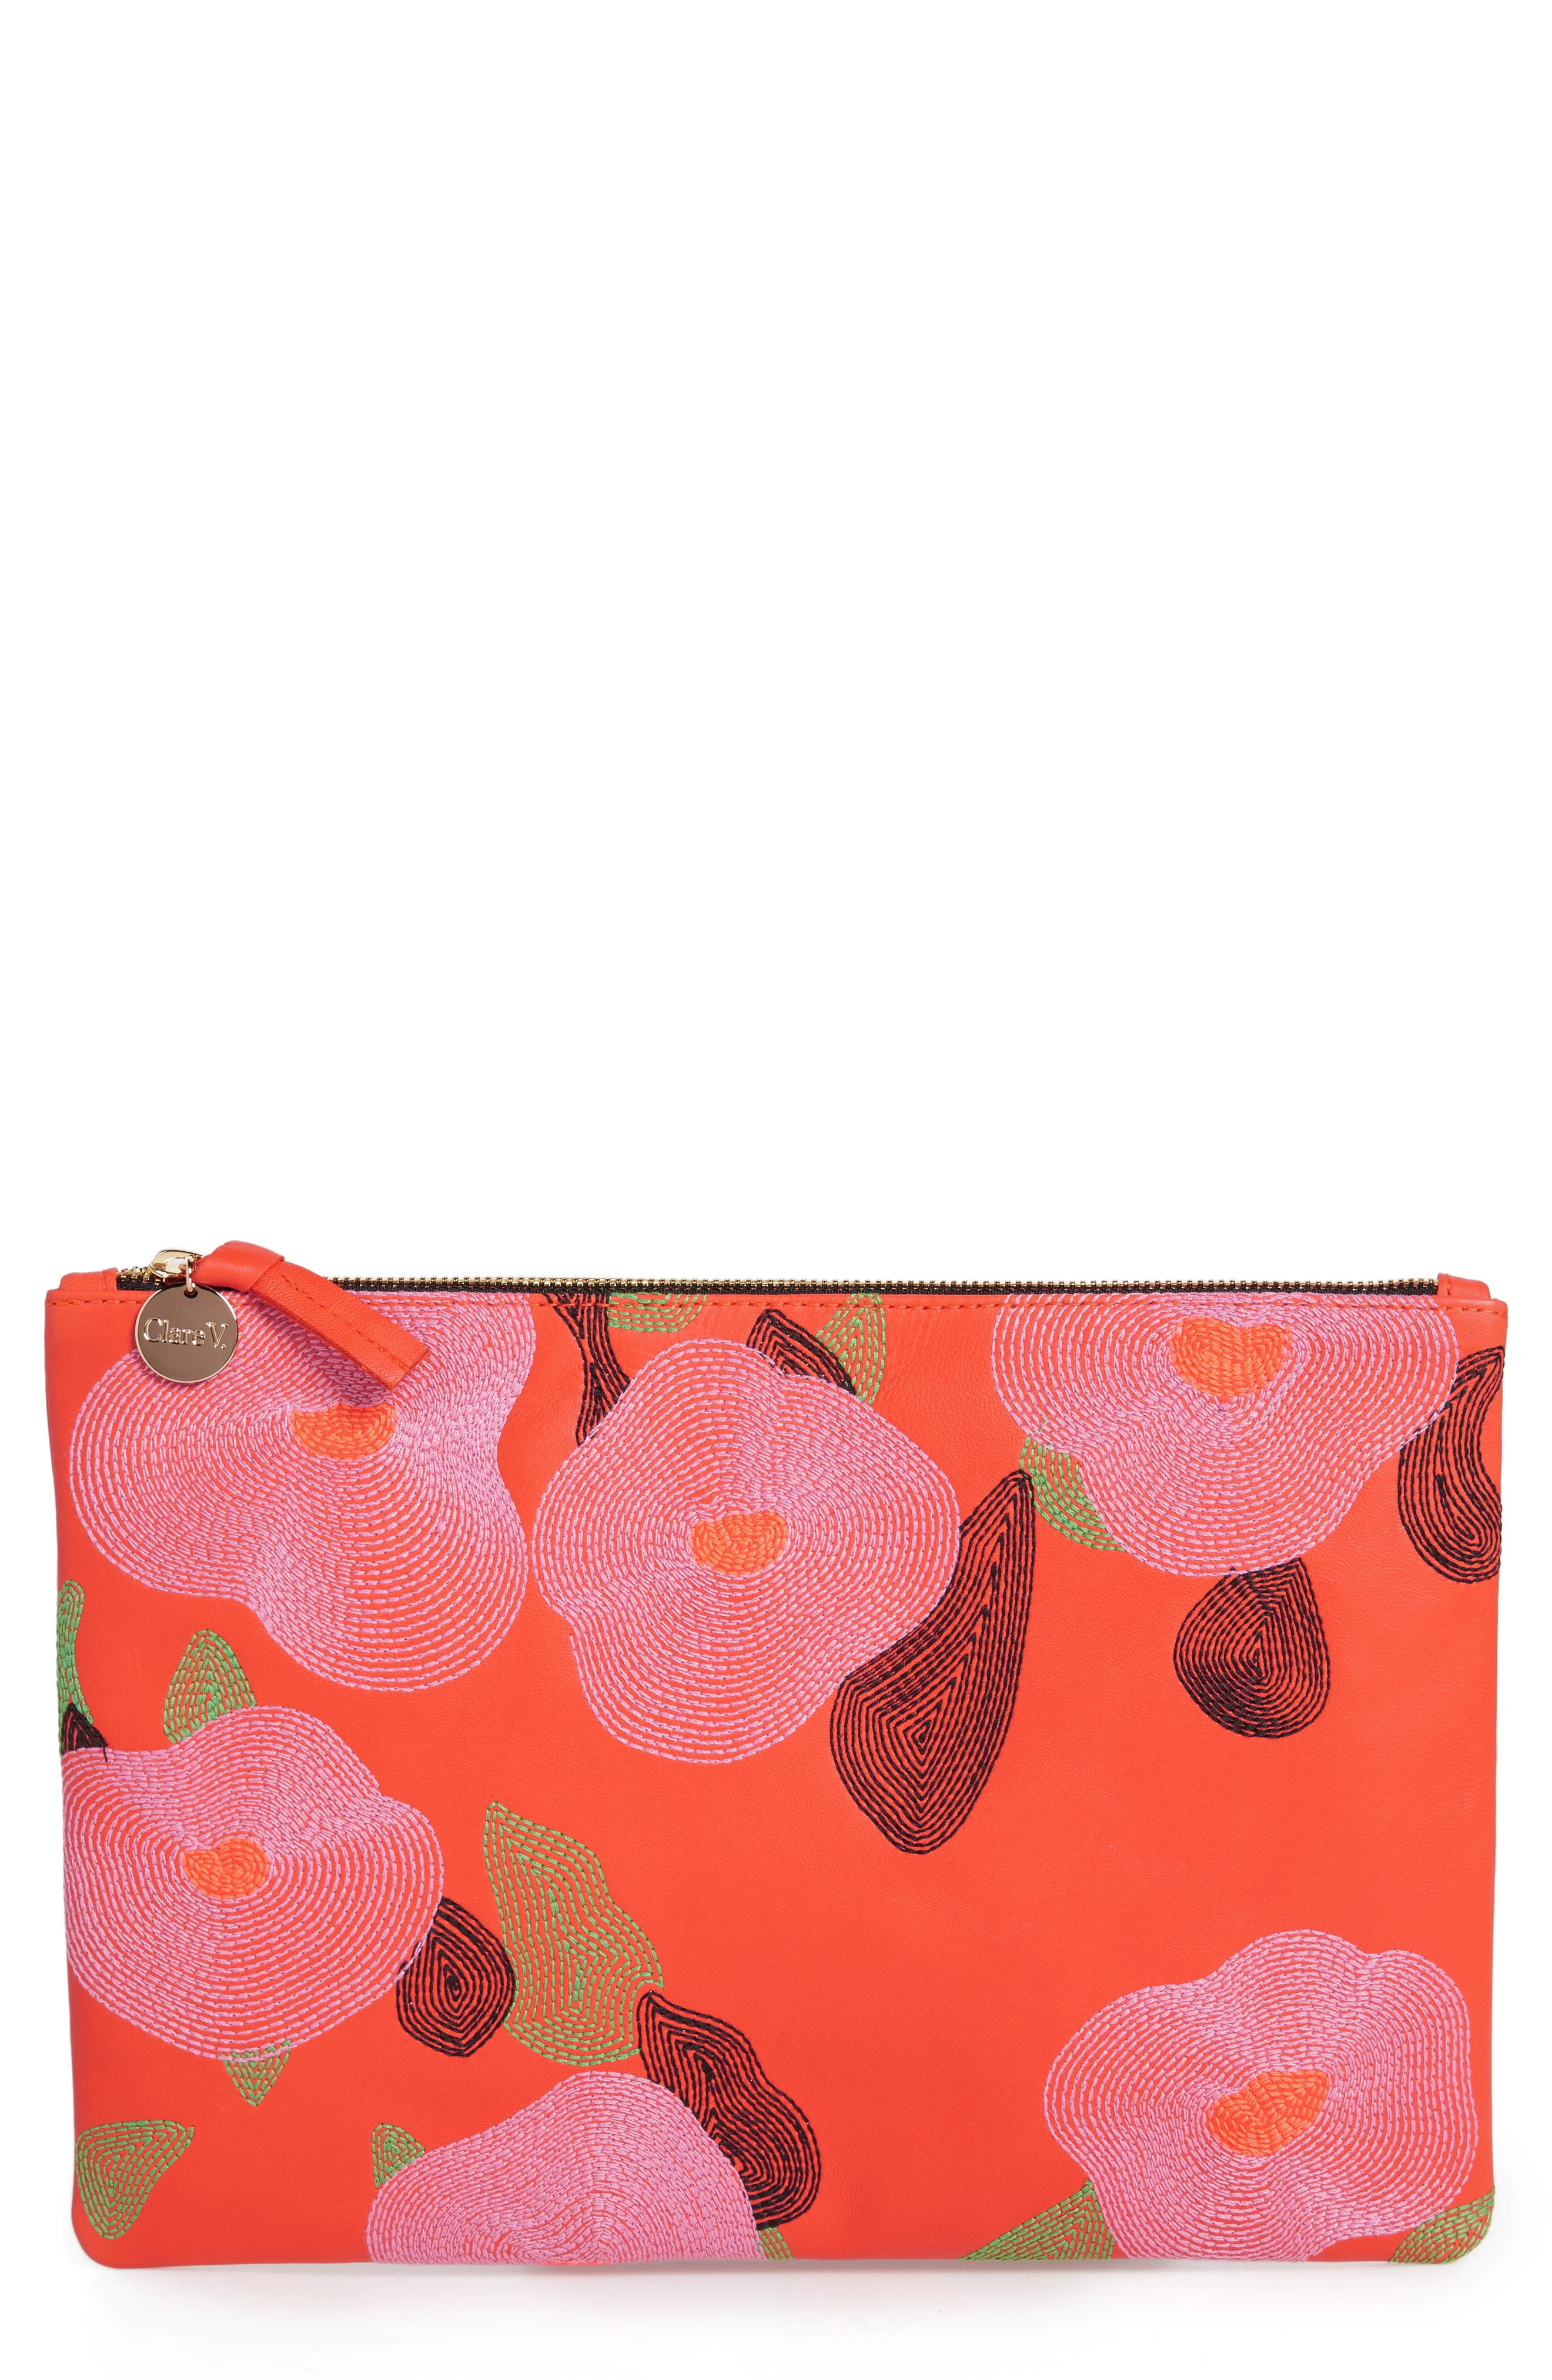 Embroidered Poppy Leather Flat Clutch,                         Main,                         color,